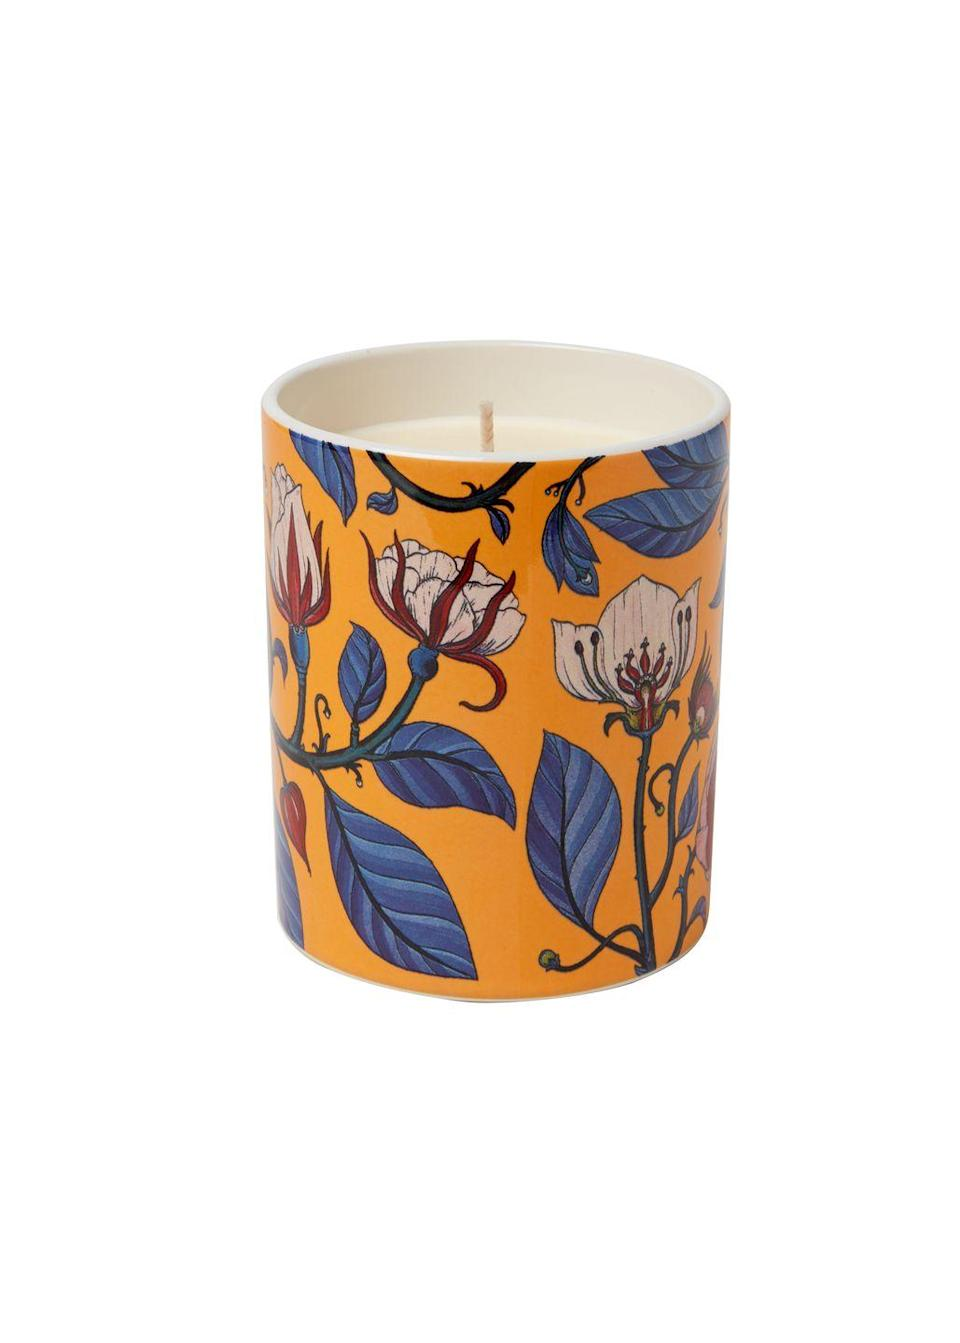 """<p>Made with all-natural wax, these pretty candles from Polkra feature surreal botanical drawings by the award-winning artist Katie Scott. Choose from five enchanting scents, including our favourite, Calypso Rose, with floral notes and a subtle woody bouquet. You can enjoy these candles long after the wax meets the bottom of the wick, as the ceramic pots make wonderful vessels for pens, toothbrushes, plants and more. ALEXANDRA DUDLEY</p><p>£49, <a href=""""http://www.polkra.com"""" rel=""""nofollow noopener"""" target=""""_blank"""" data-ylk=""""slk:Polkra"""" class=""""link rapid-noclick-resp"""">Polkra</a></p>"""